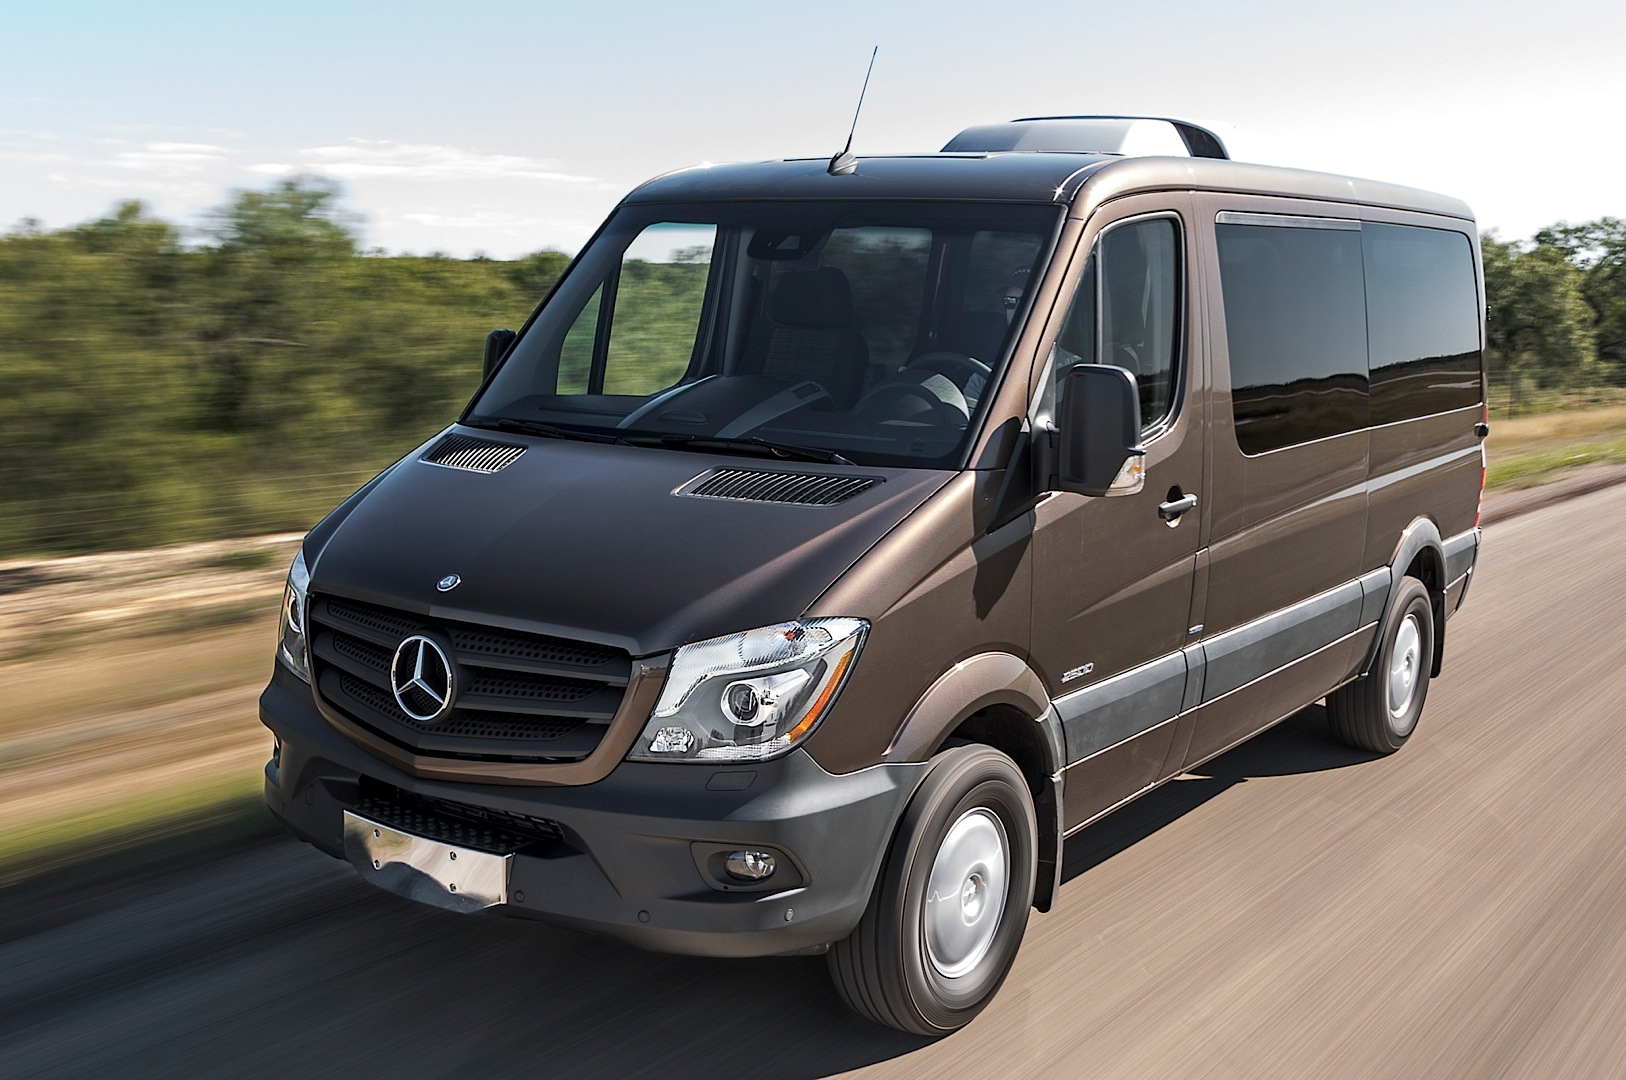 2014 mercedes benz sprinter image 13 for Mercedes benz sprinter 2014